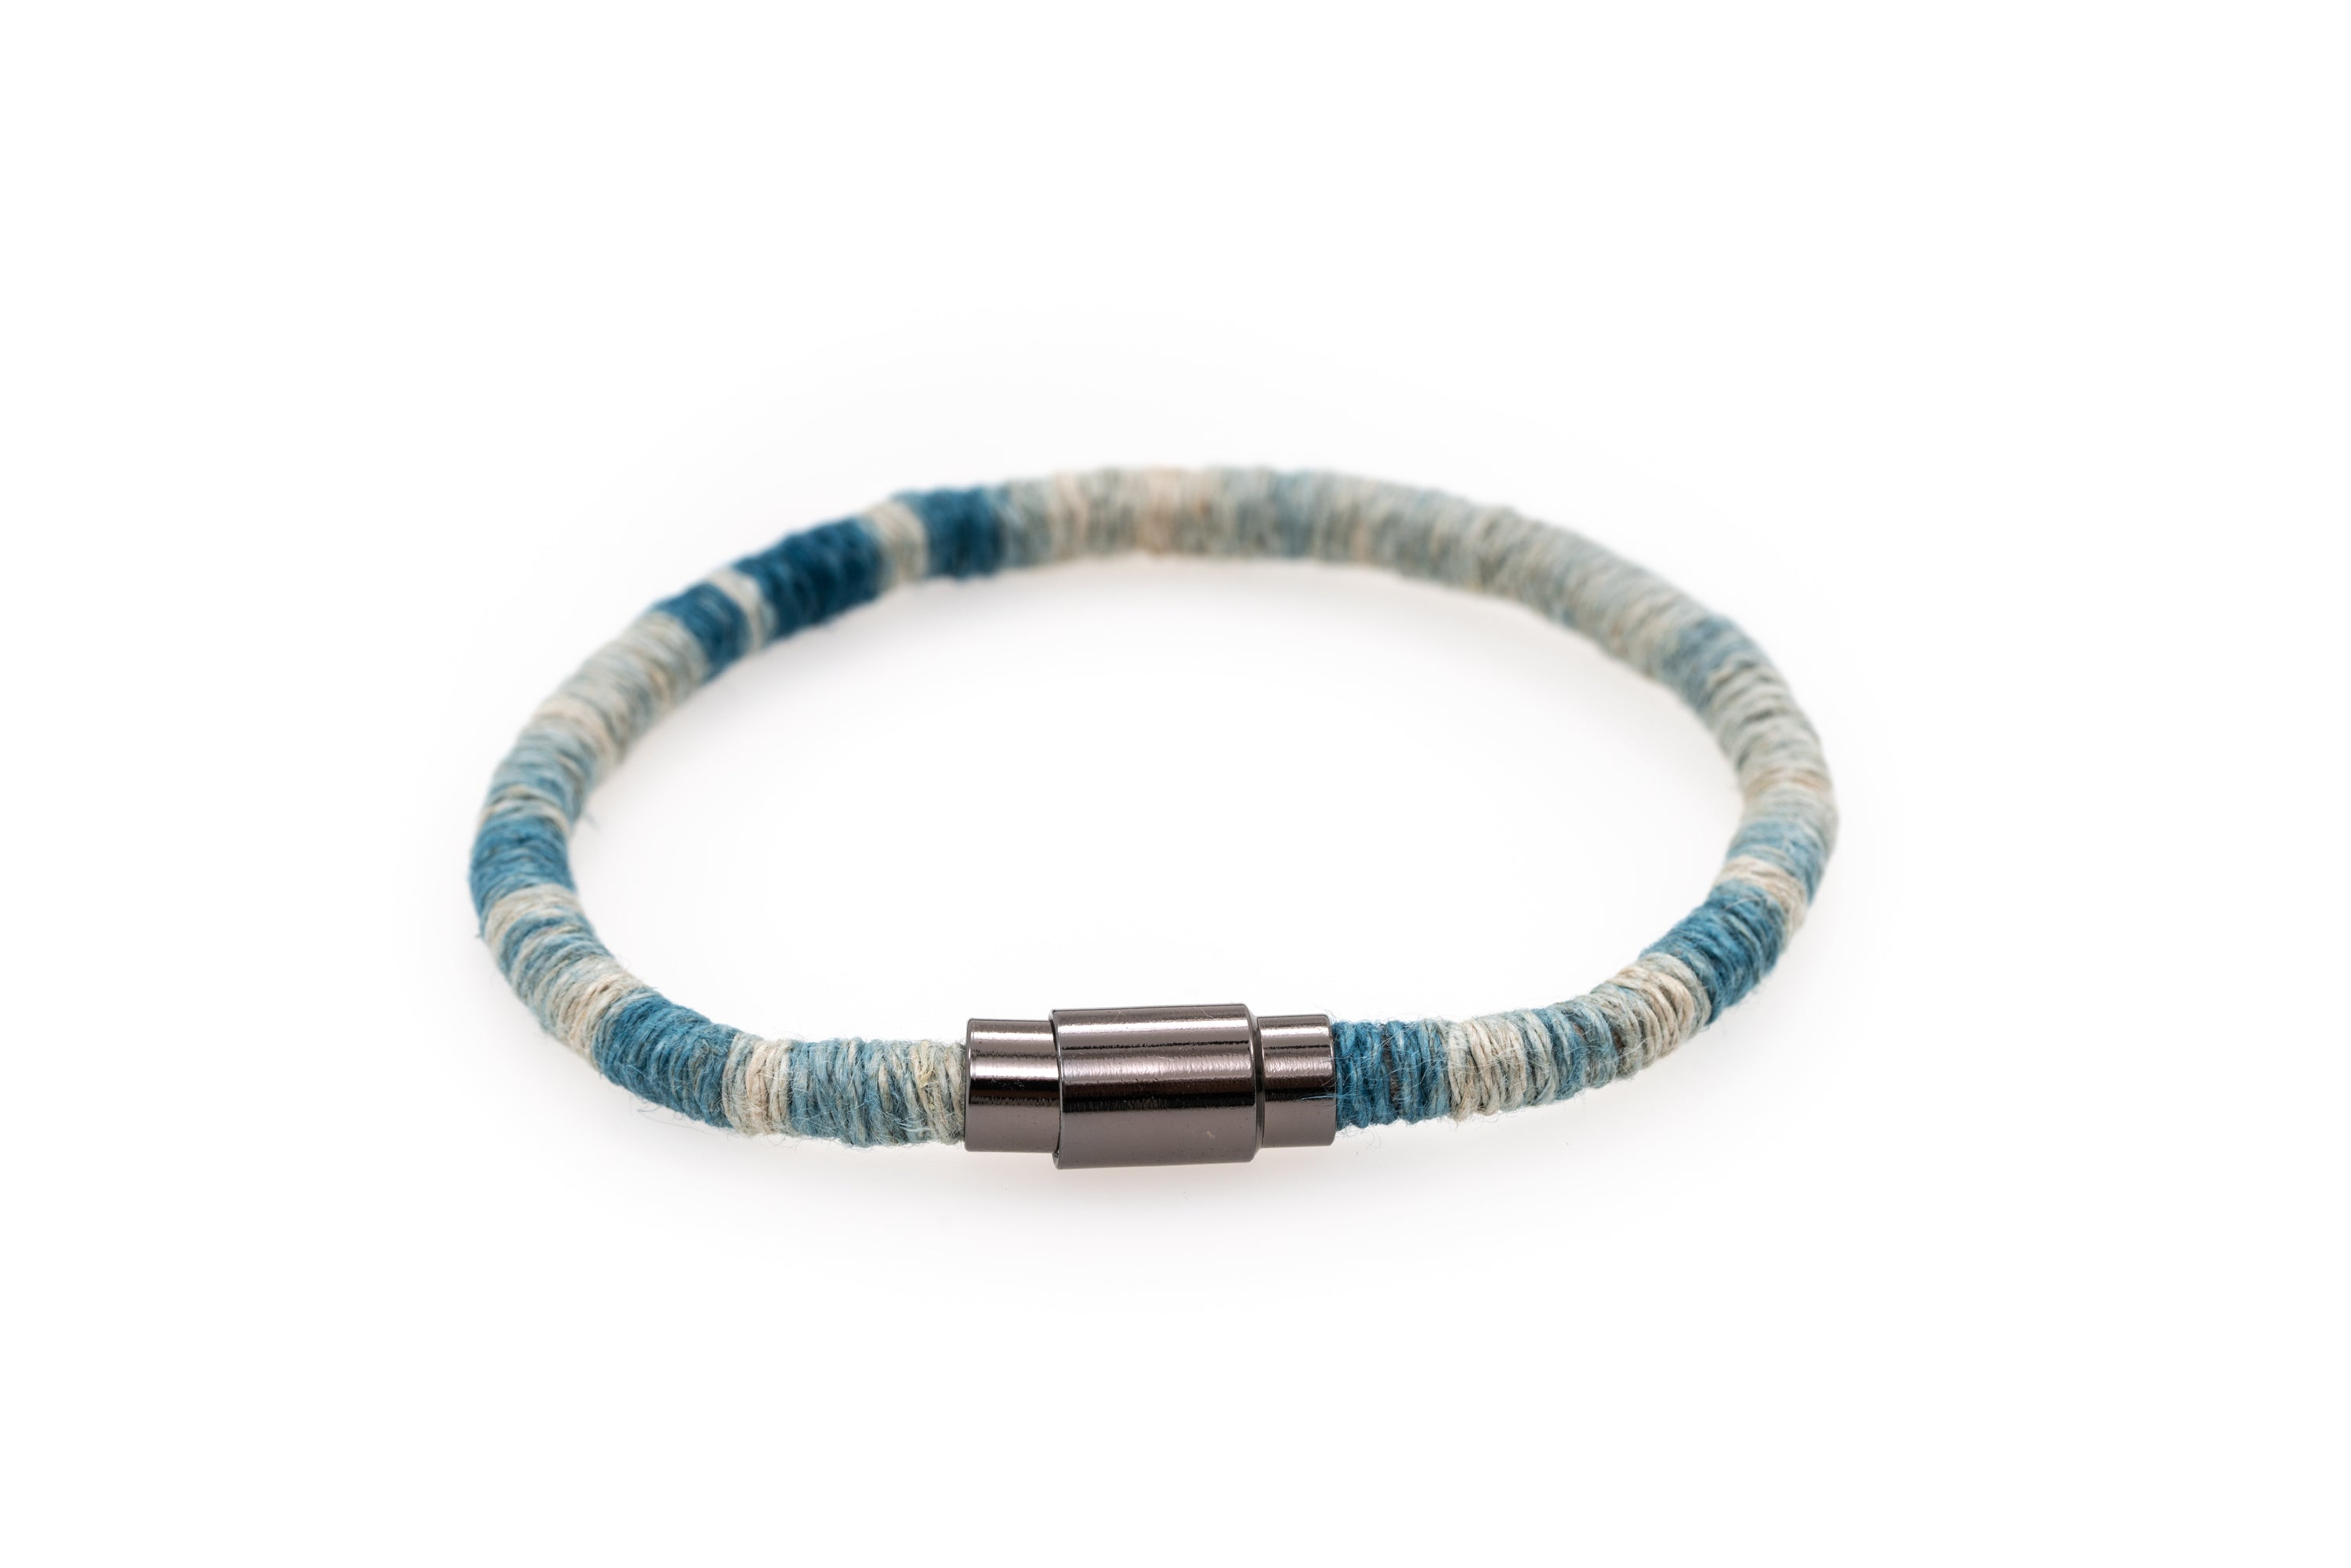 Fiber Art Jewelry Hemp Wrapped Bracelet Size L - Lighter Blue / Antiquated Patina Plated Magnet